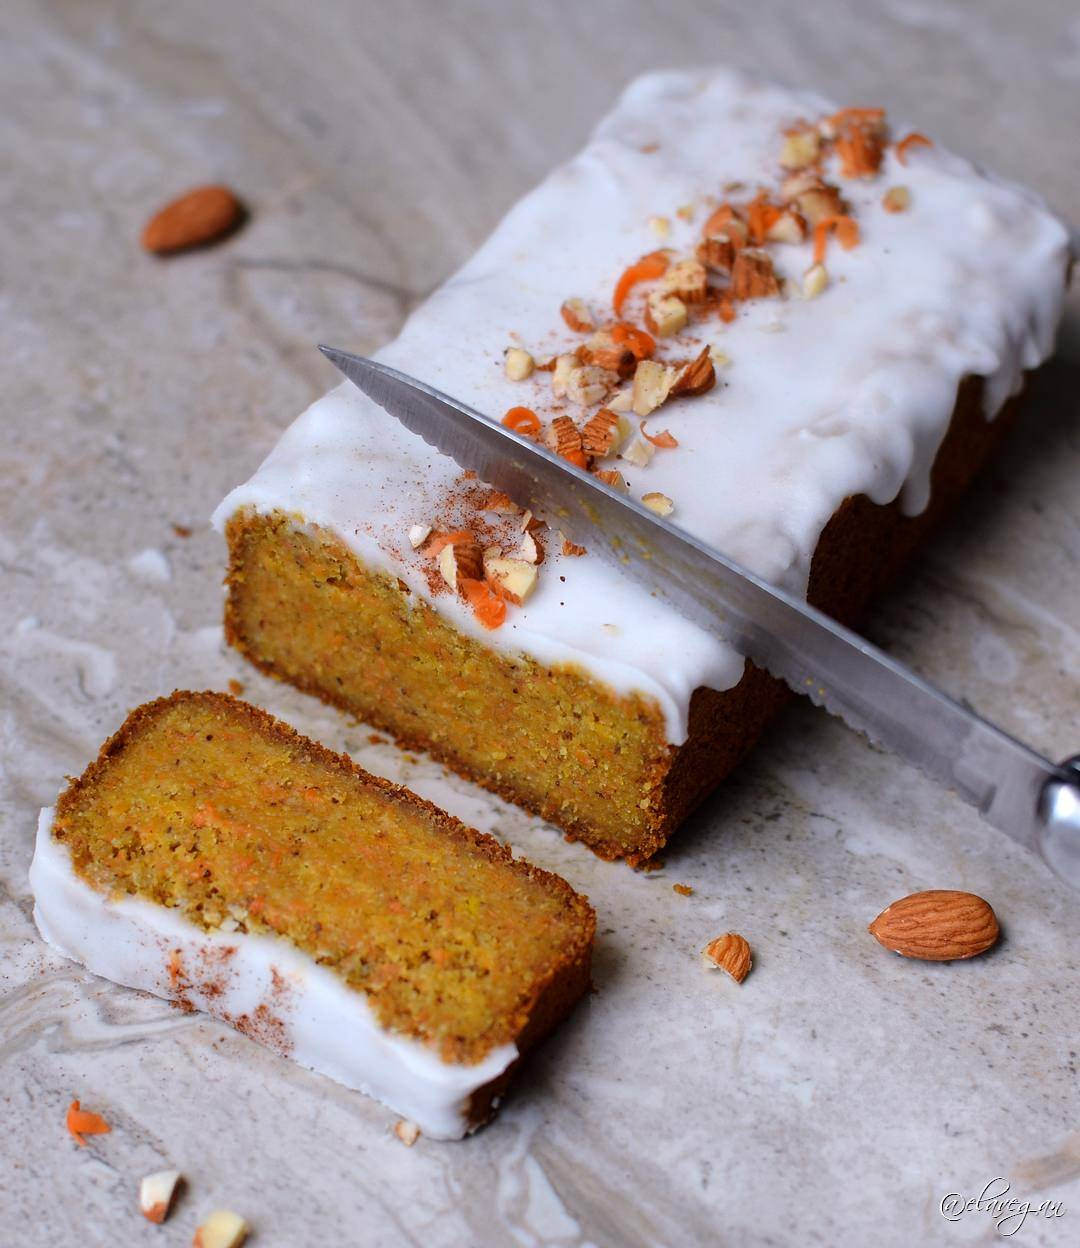 Vegan and gluten-free carrot cake with a keto friendly icing